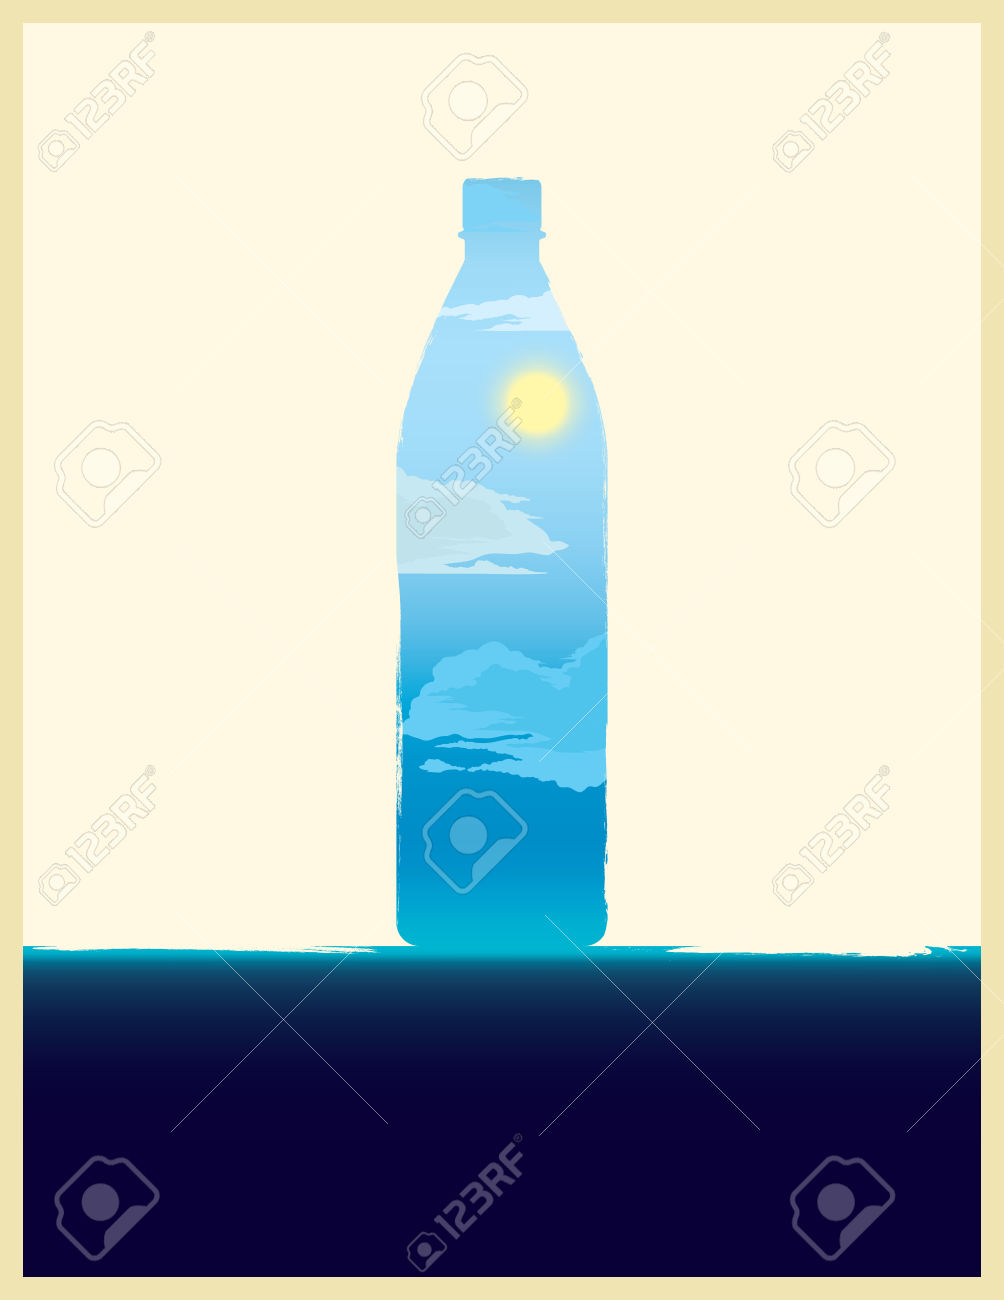 Water Bottle Illustration With Double Exposure Effect. Royalty.